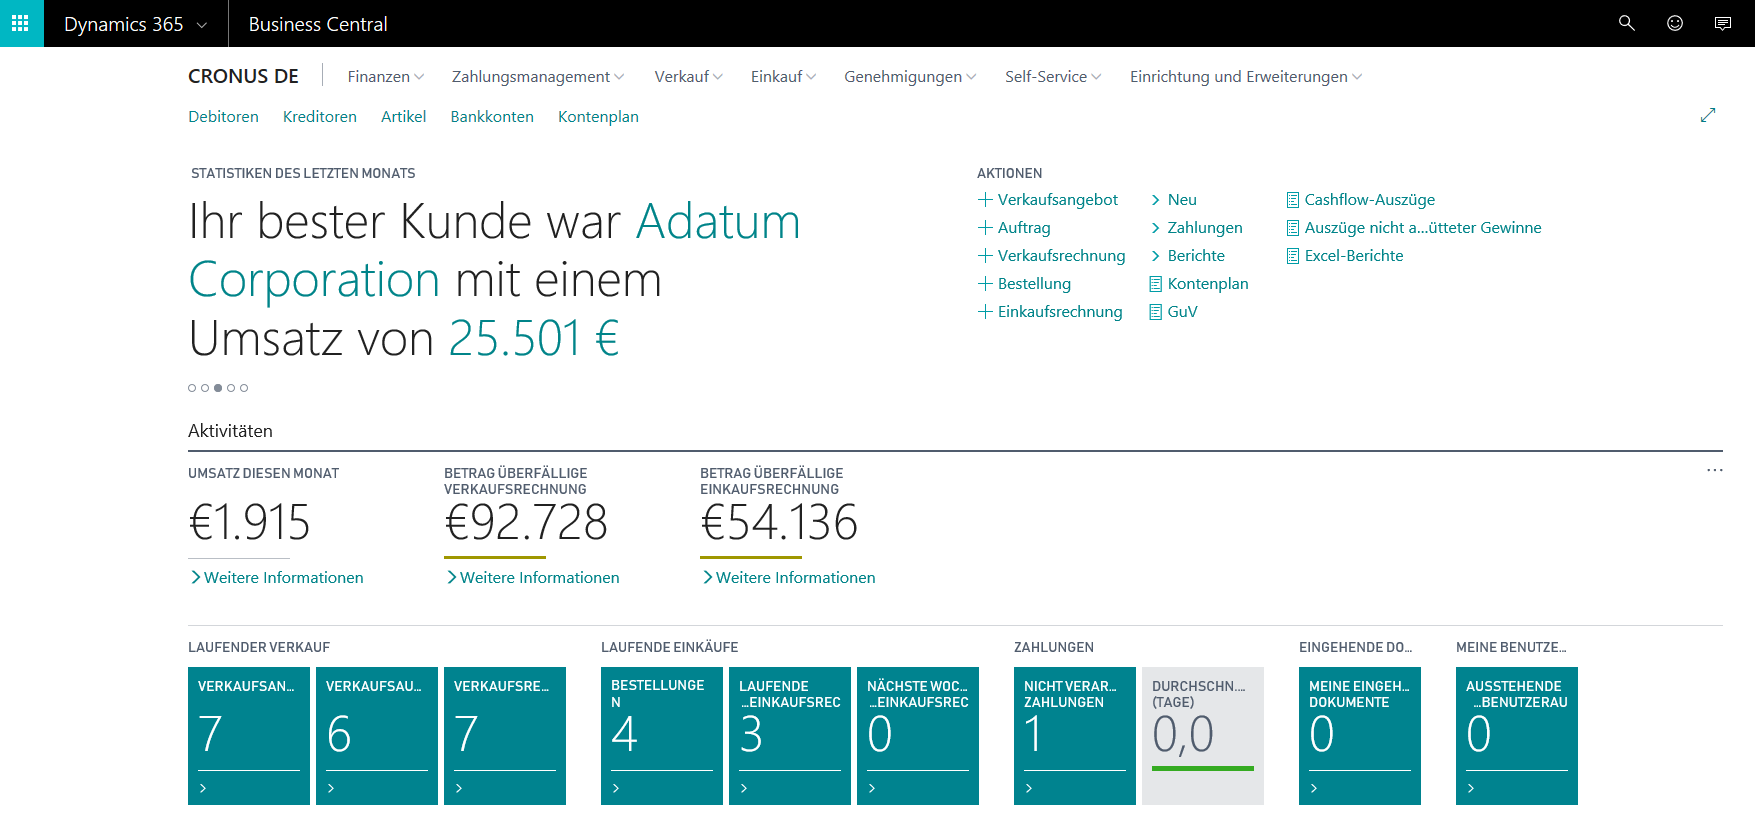 Abbildung 1: Dynamics 365 Business Central Dashboard